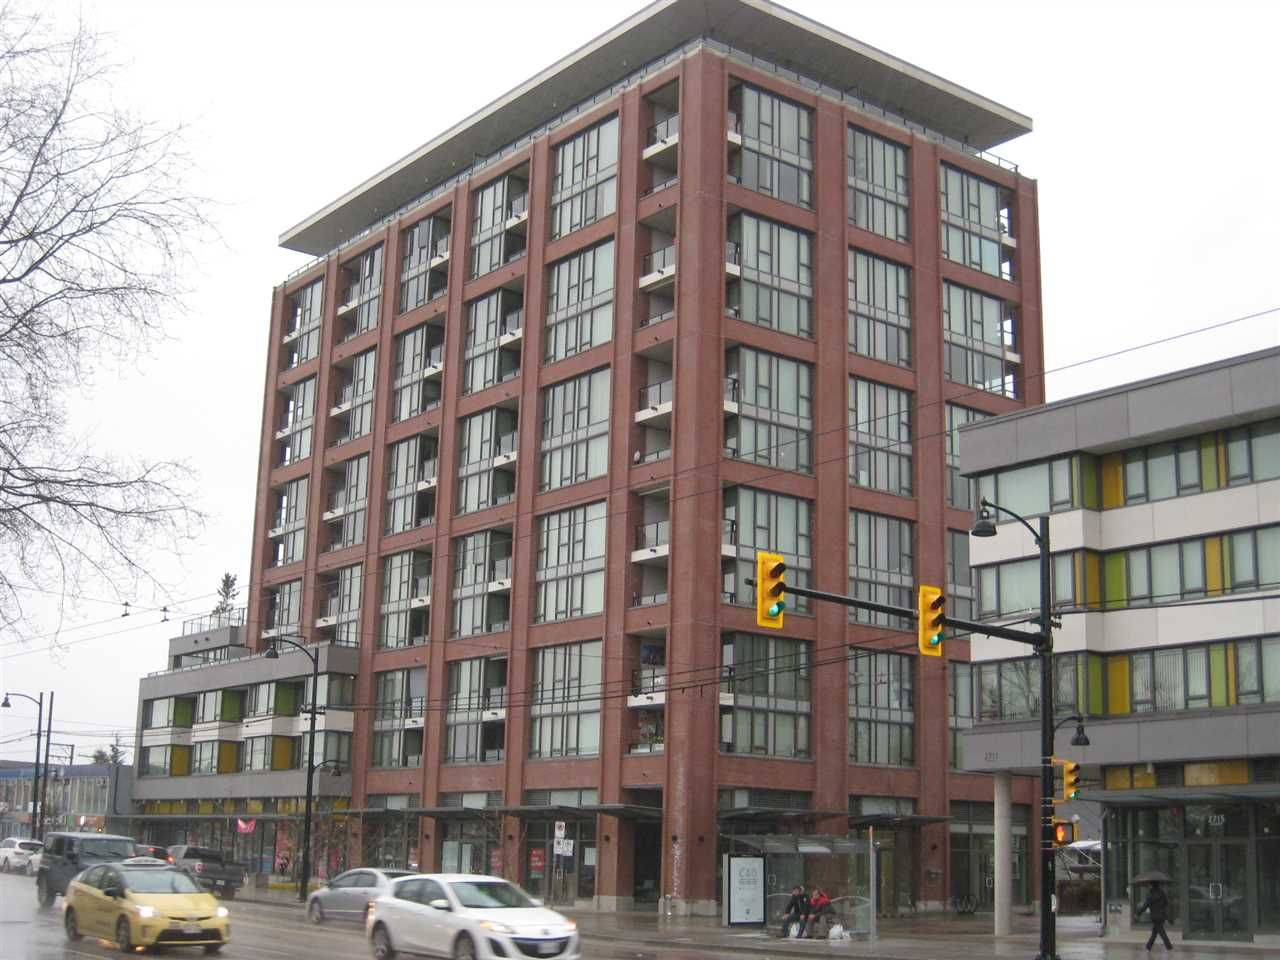 """Main Photo: 808 2689 KINGSWAY in Vancouver: Collingwood VE Condo for sale in """"SKYWAY TOWER"""" (Vancouver East)  : MLS®# R2041971"""